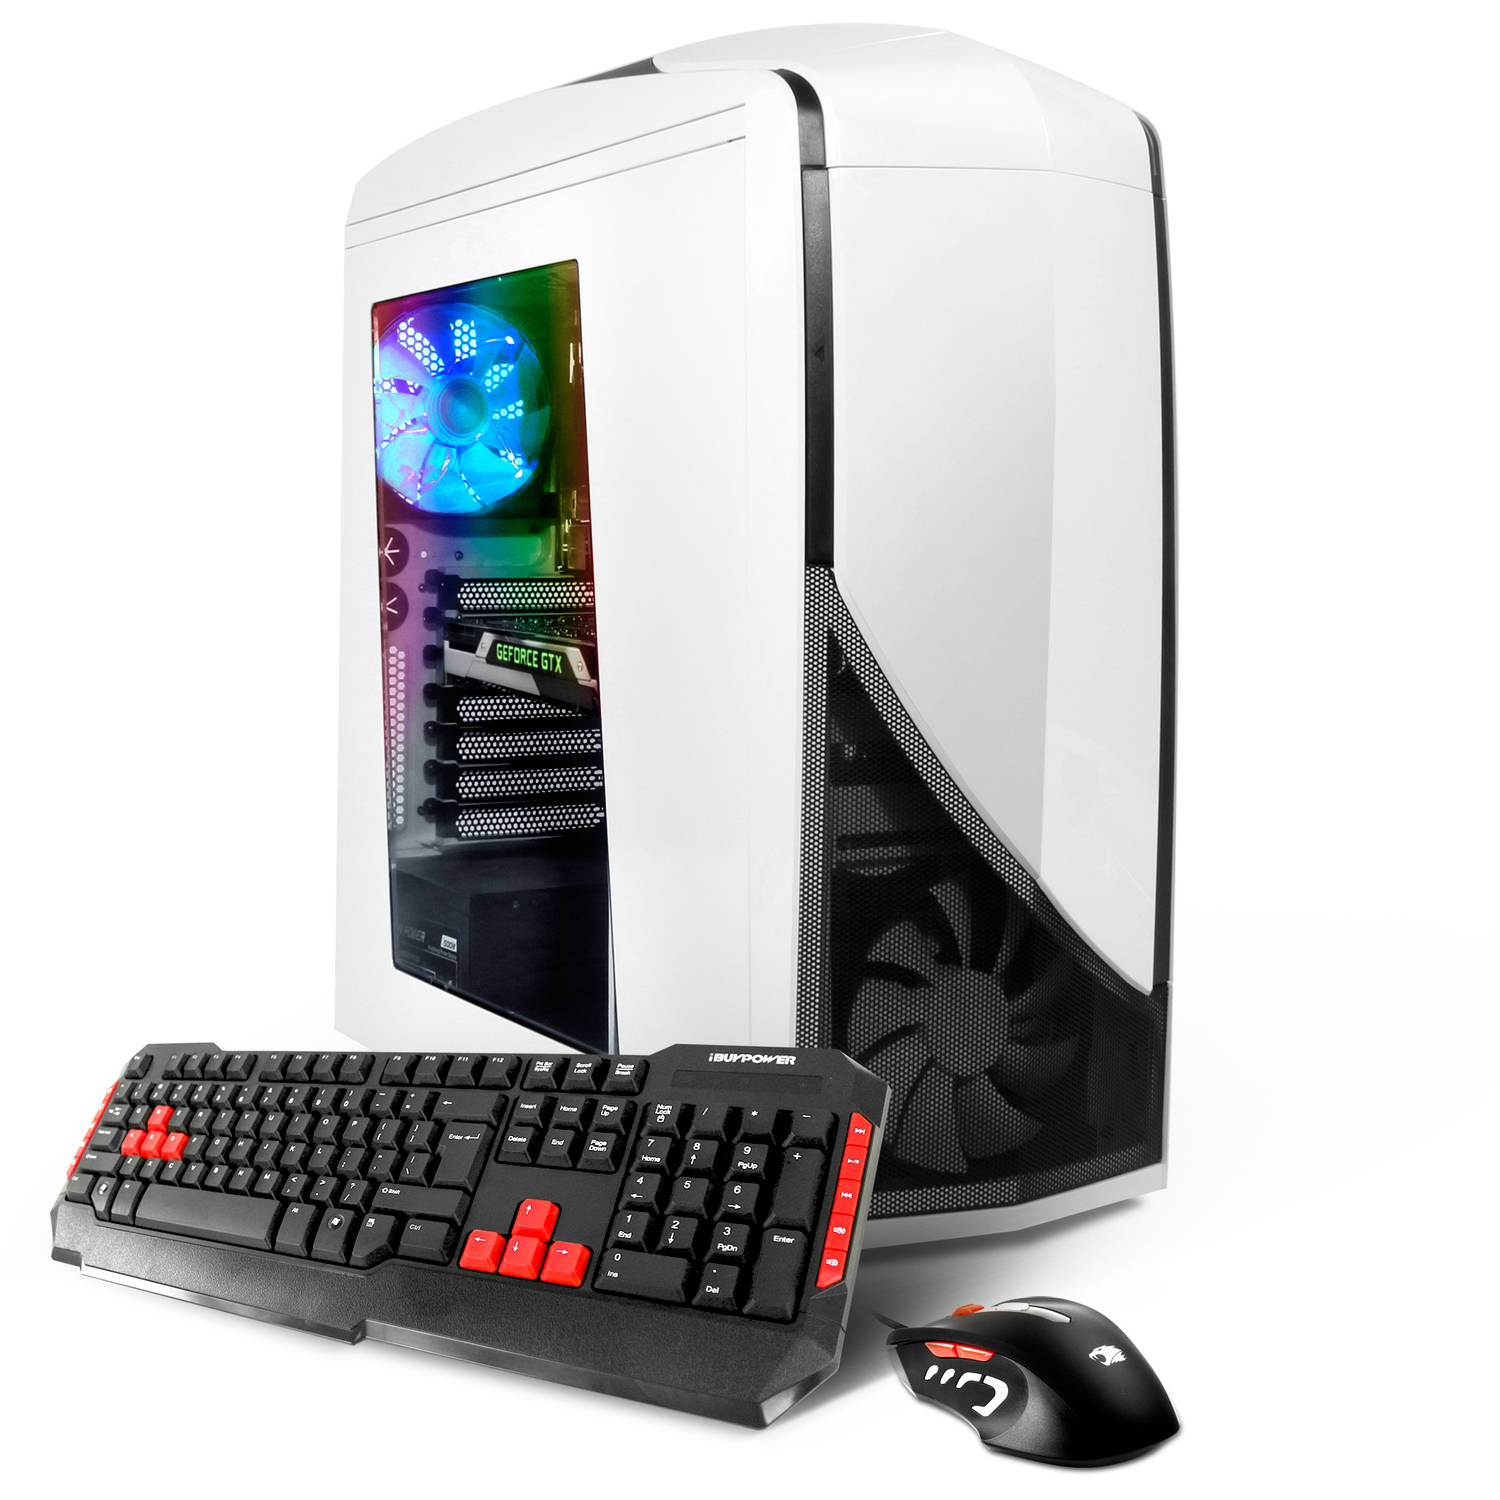 iBUYPOWER Phantom Gamer WA501i Desktop PC with Intel Skylake Core i5-6600K Quad-Core Processor, 8GB Memory, 1TB Hard Drive and Windows 10 Home (Monitor Not Included)